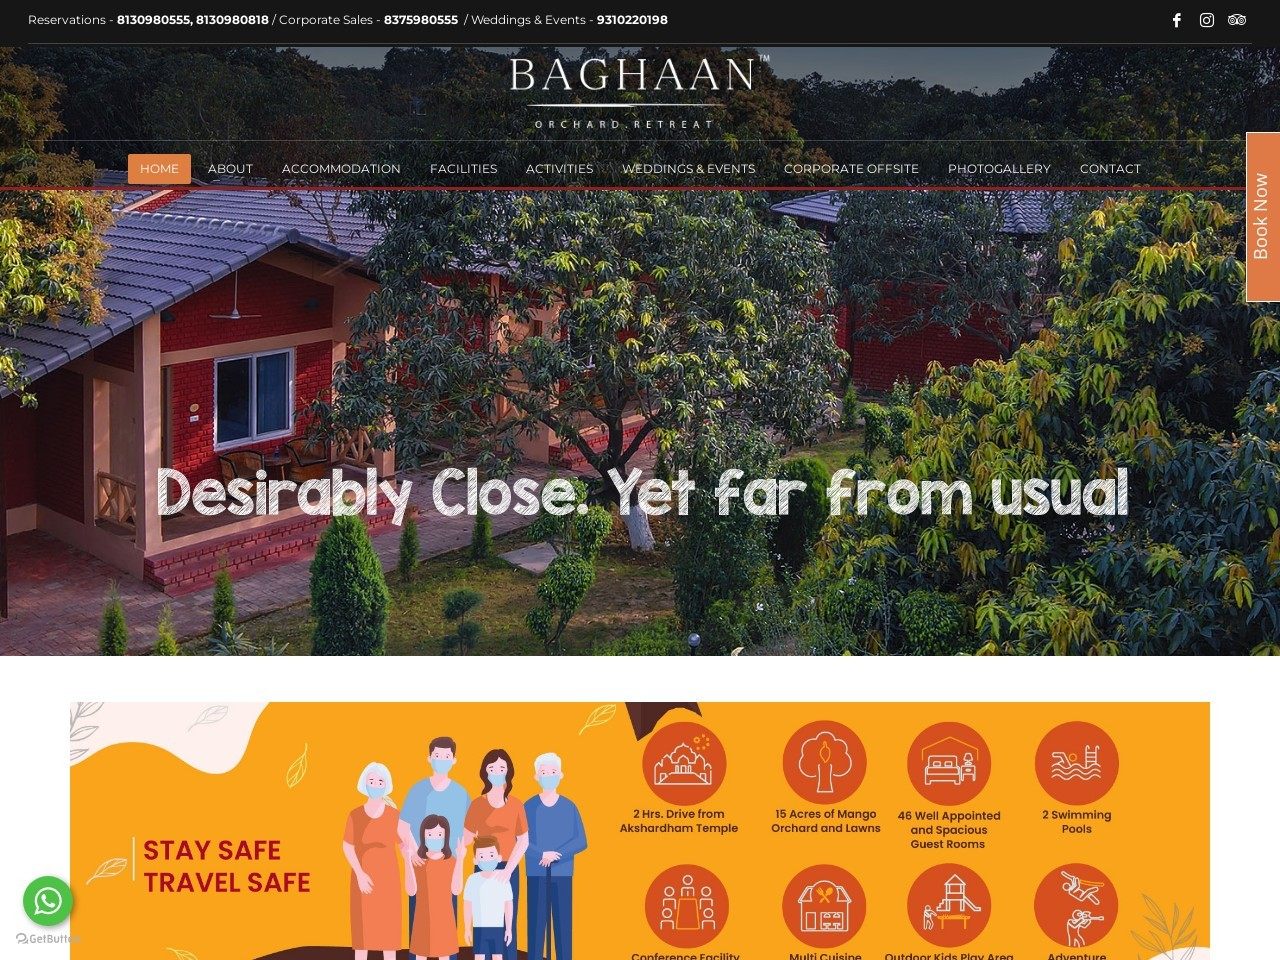 Corporate Offsite Destinations – Corporate Meeting & Events at Baghaan – Best Resorts near Delhi NCR